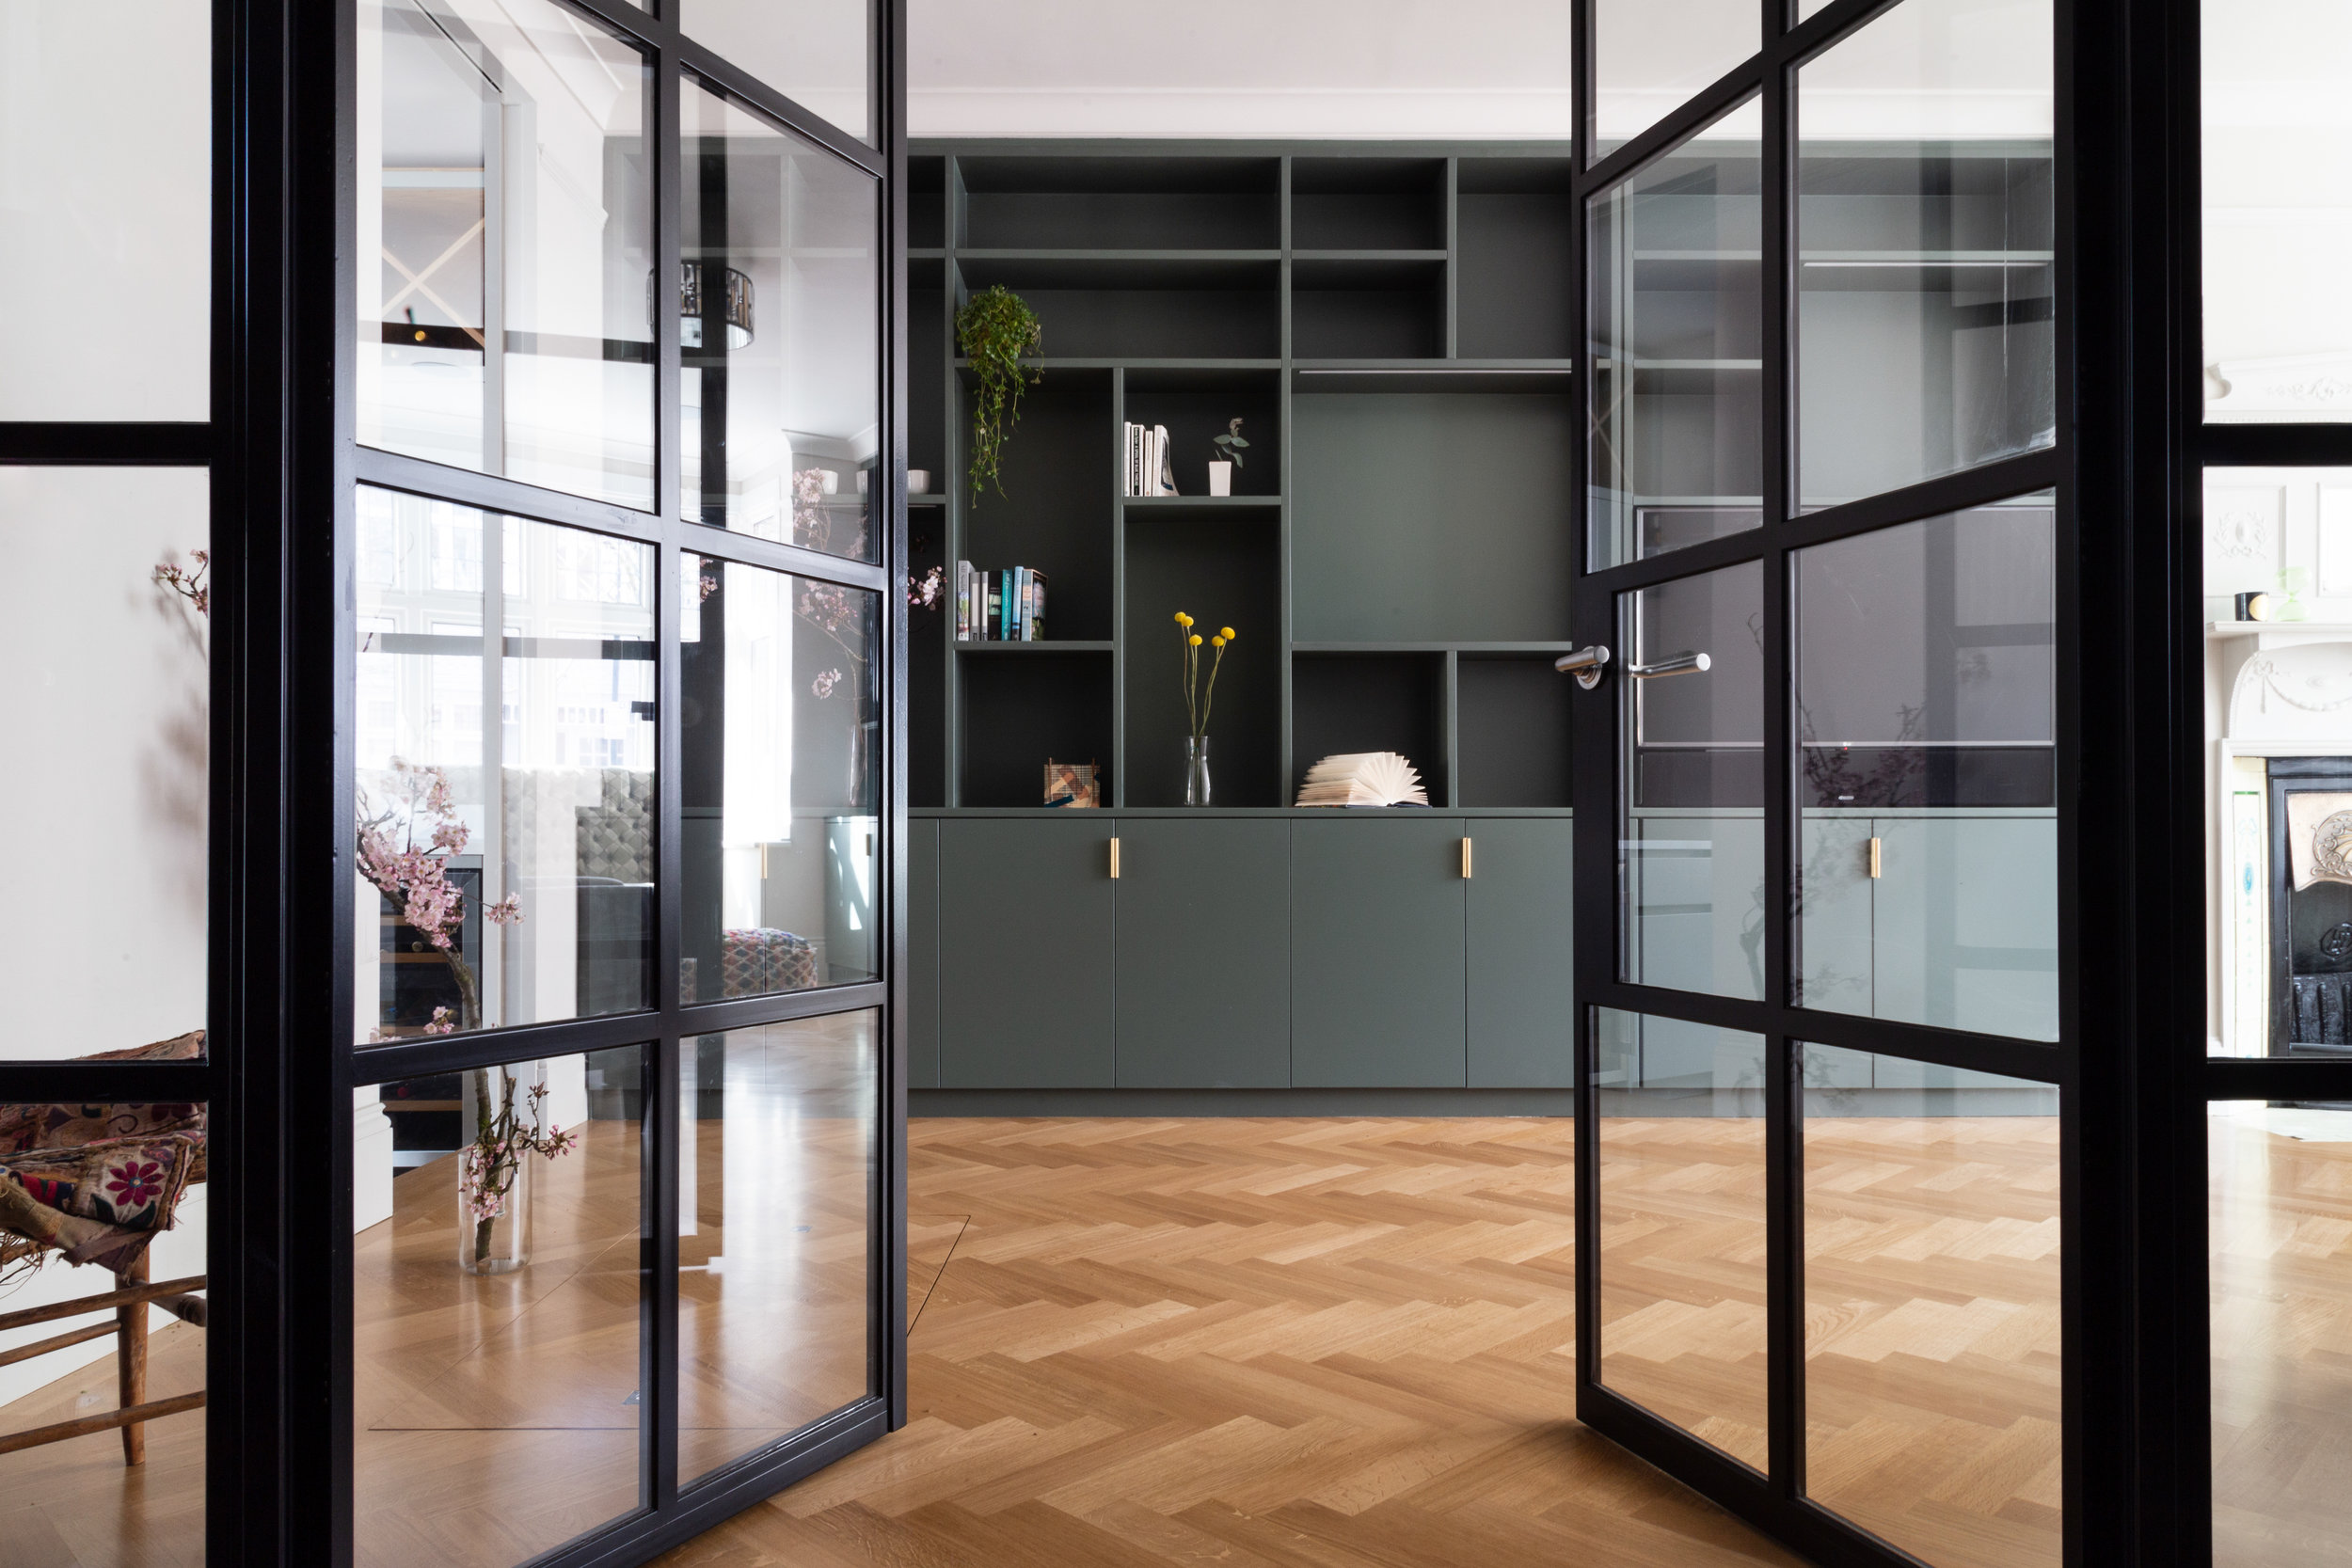 The-engineers-house-crittall-doors-living-room.jpg